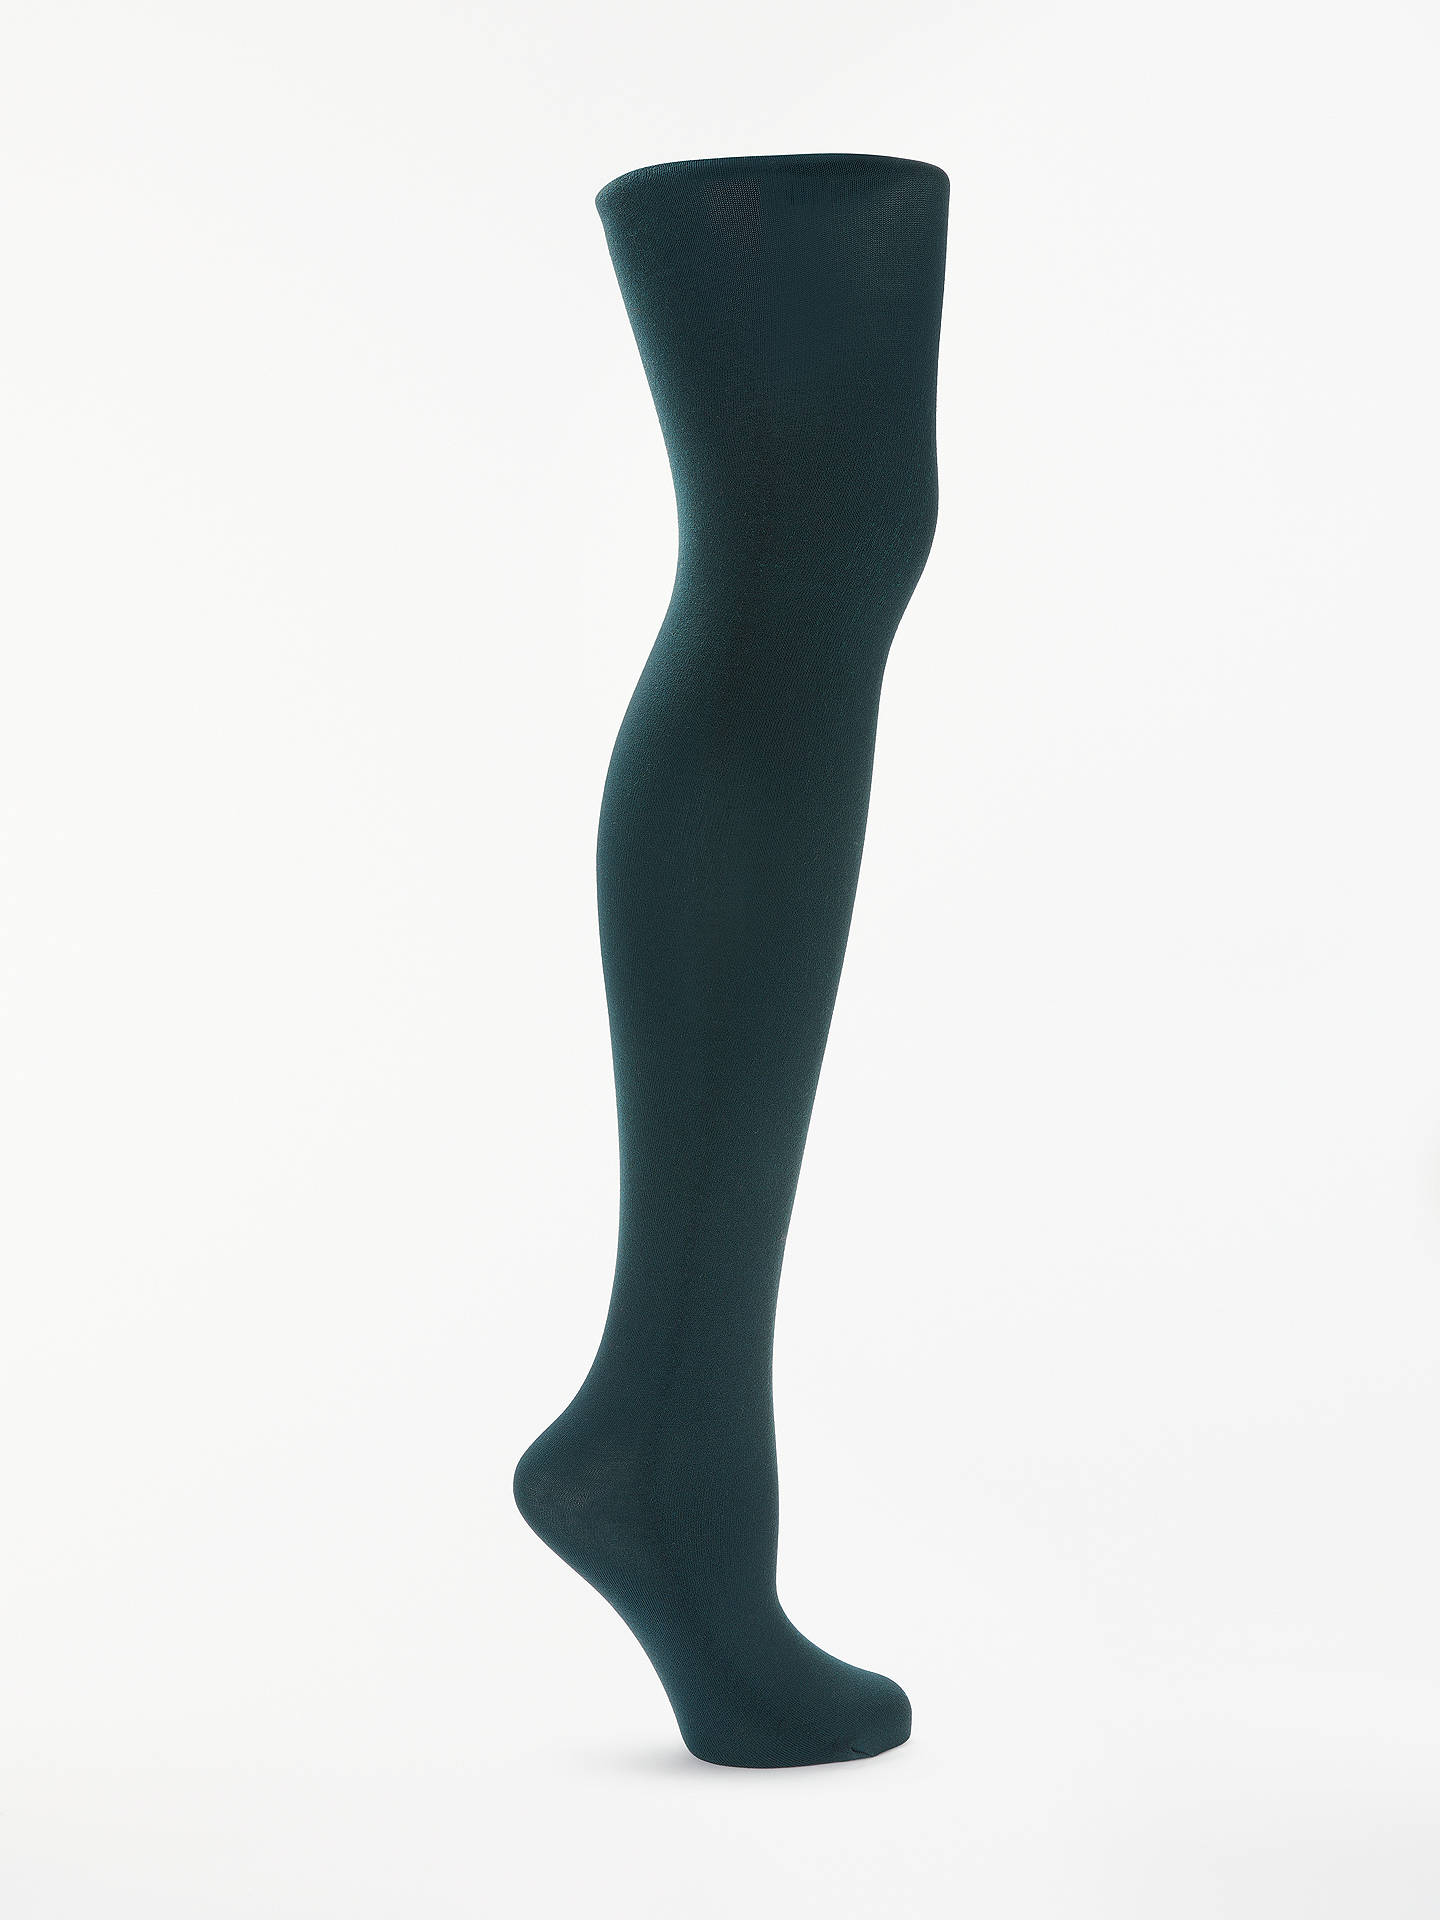 BuyJohn Lewis & Partners Egyptian Cotton Rich Velvet Touch Opaque Tights, Teal, XL Online at johnlewis.com